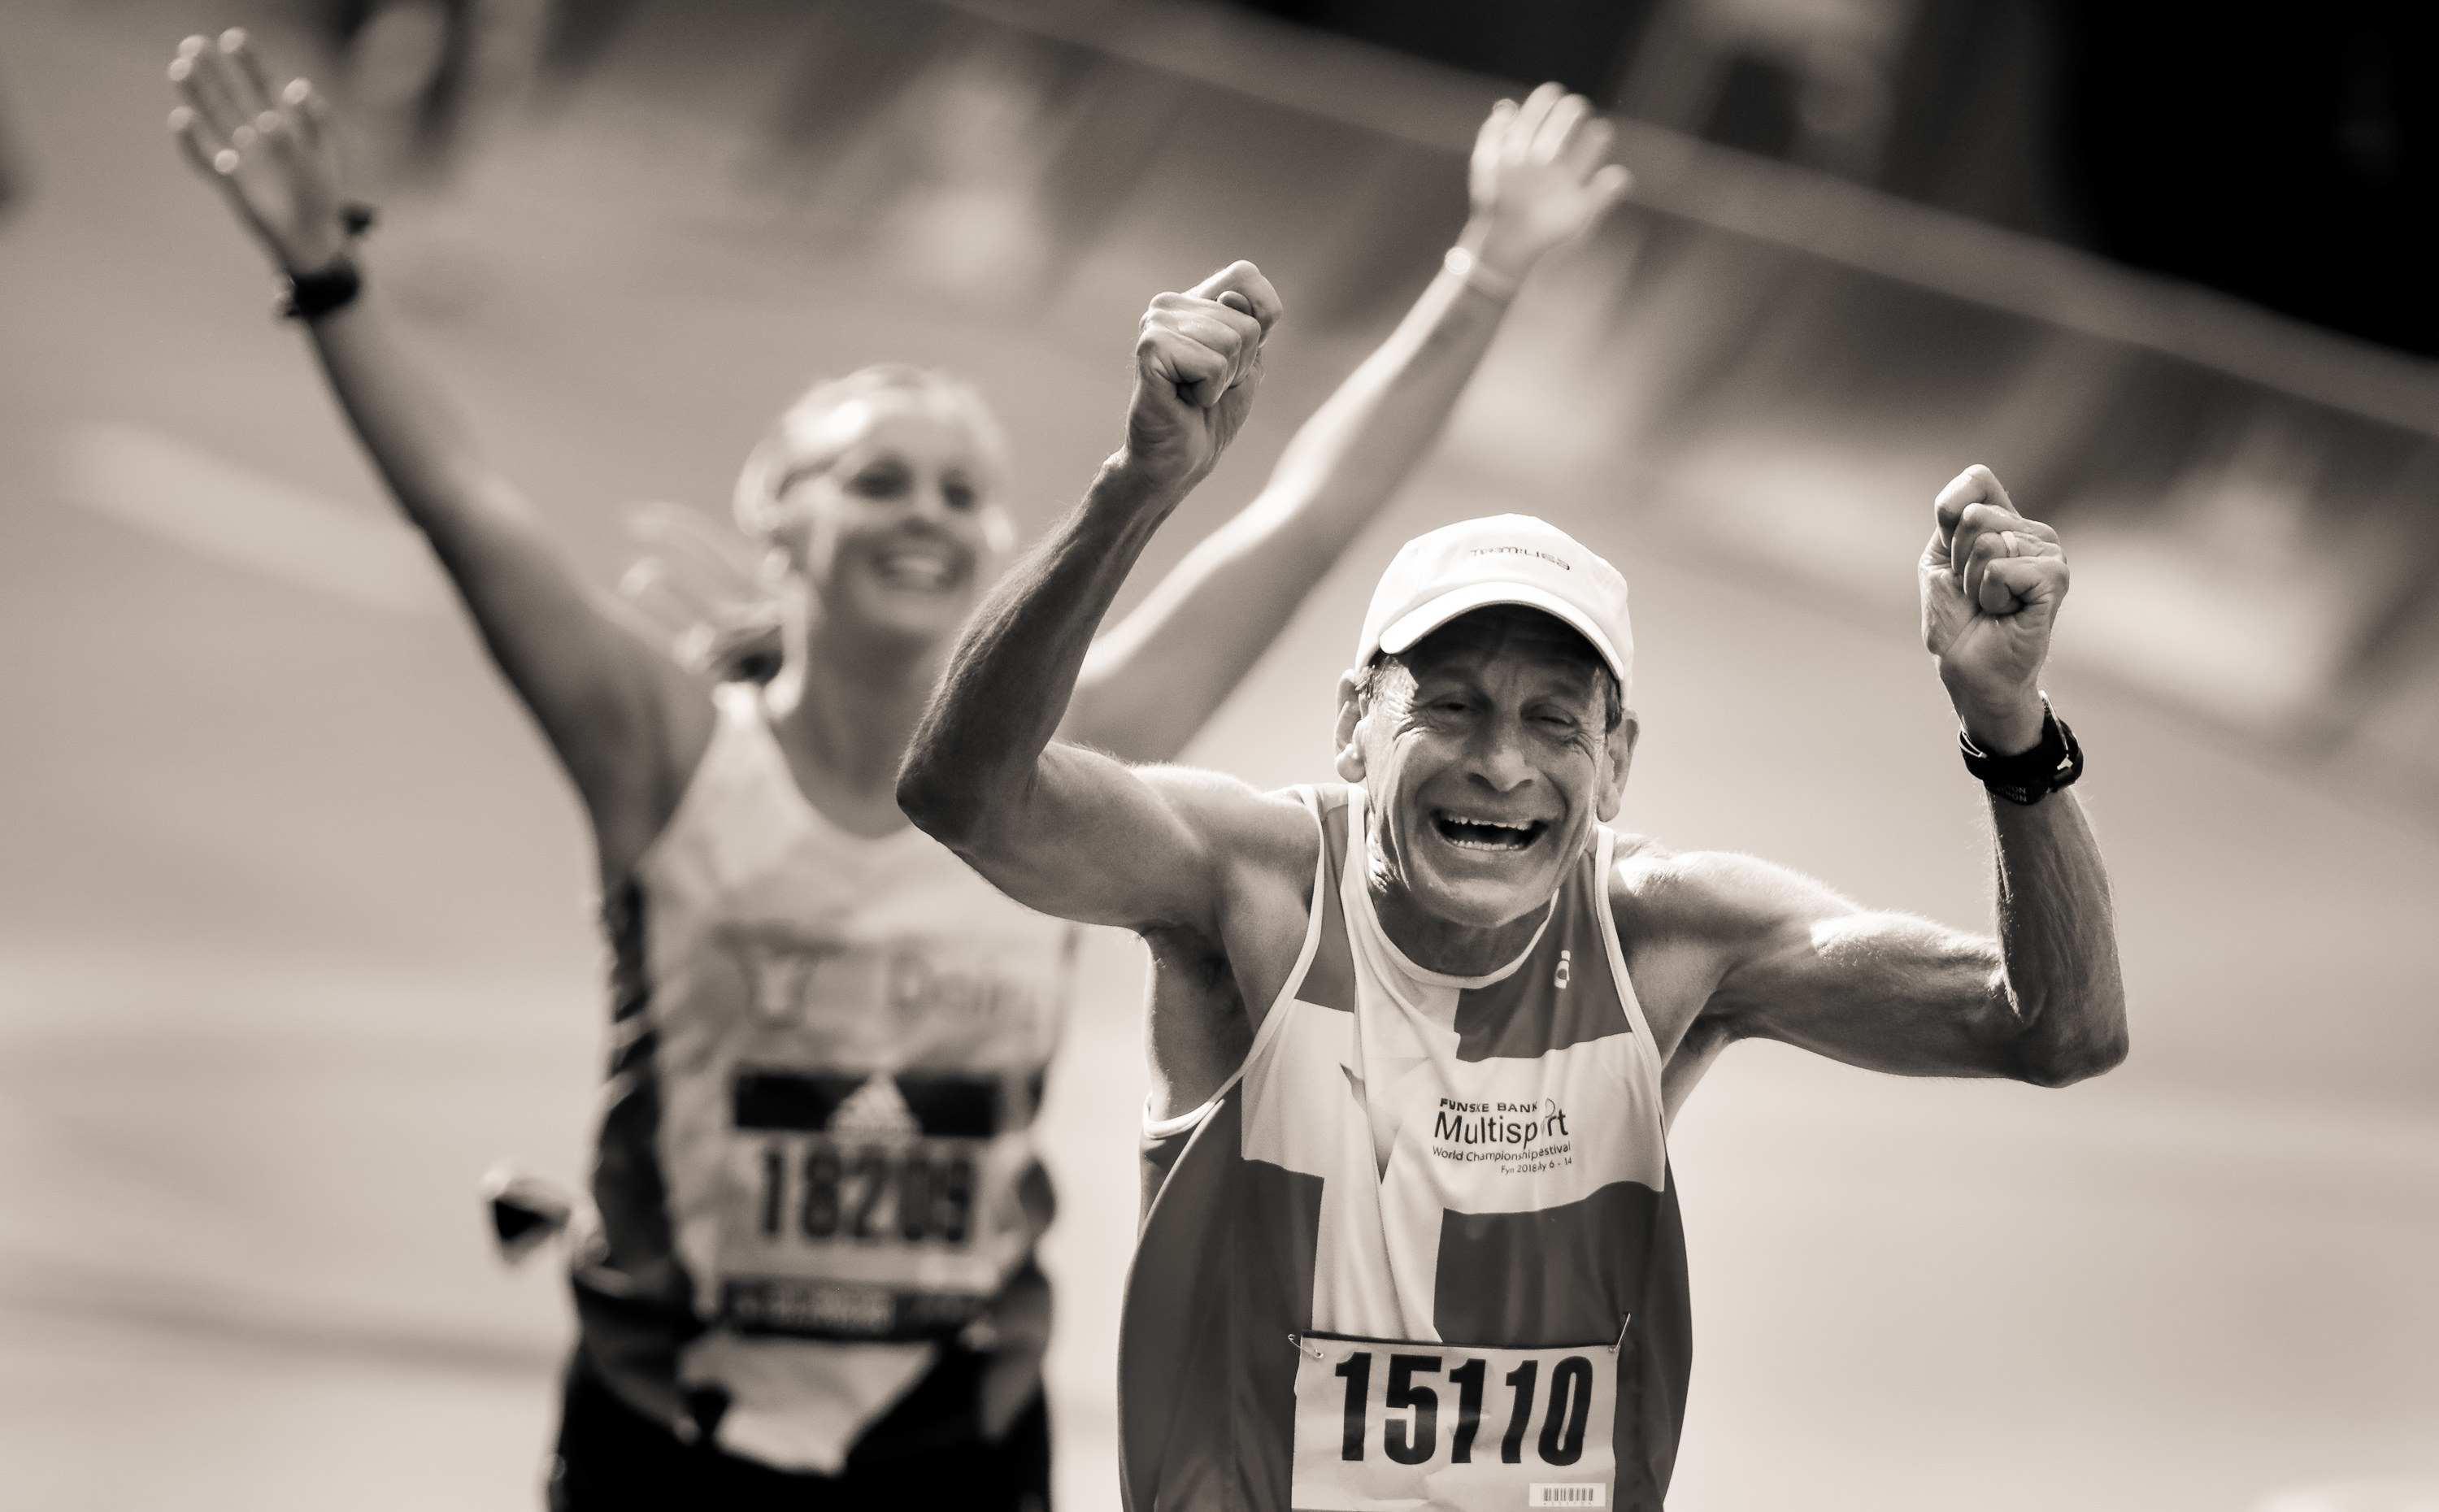 An older man cheers at the finish line, a woman celebrates behind him